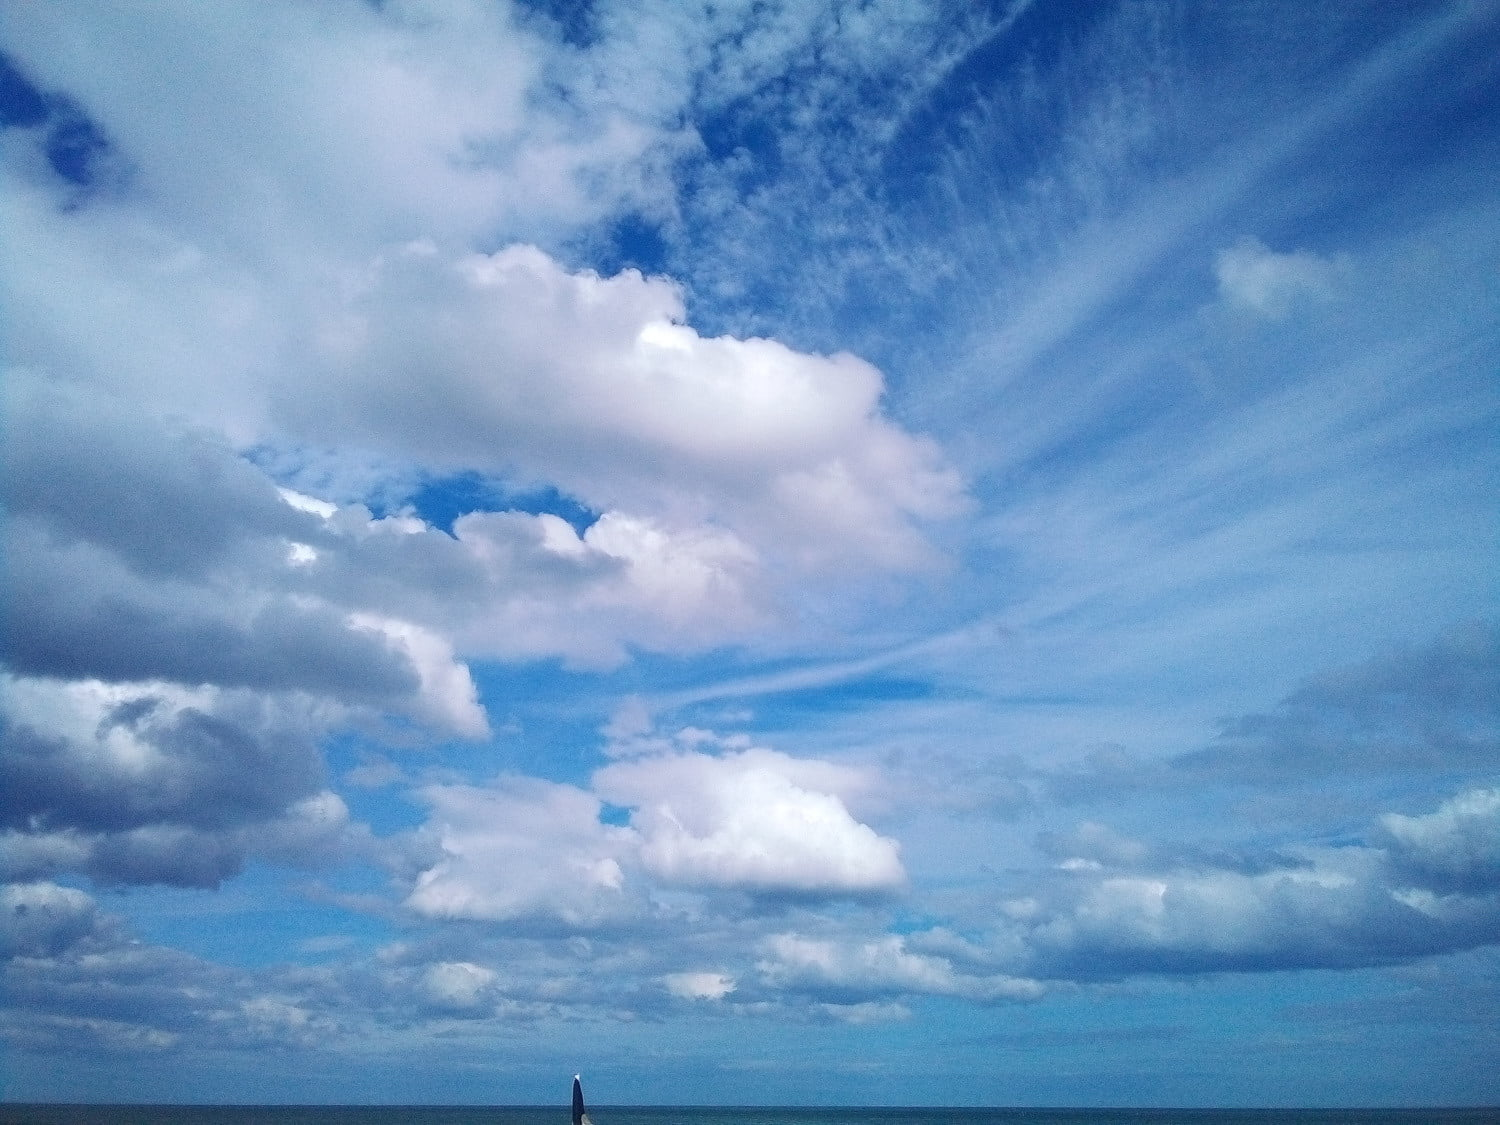 doogee s40 review camera sample sea clouds